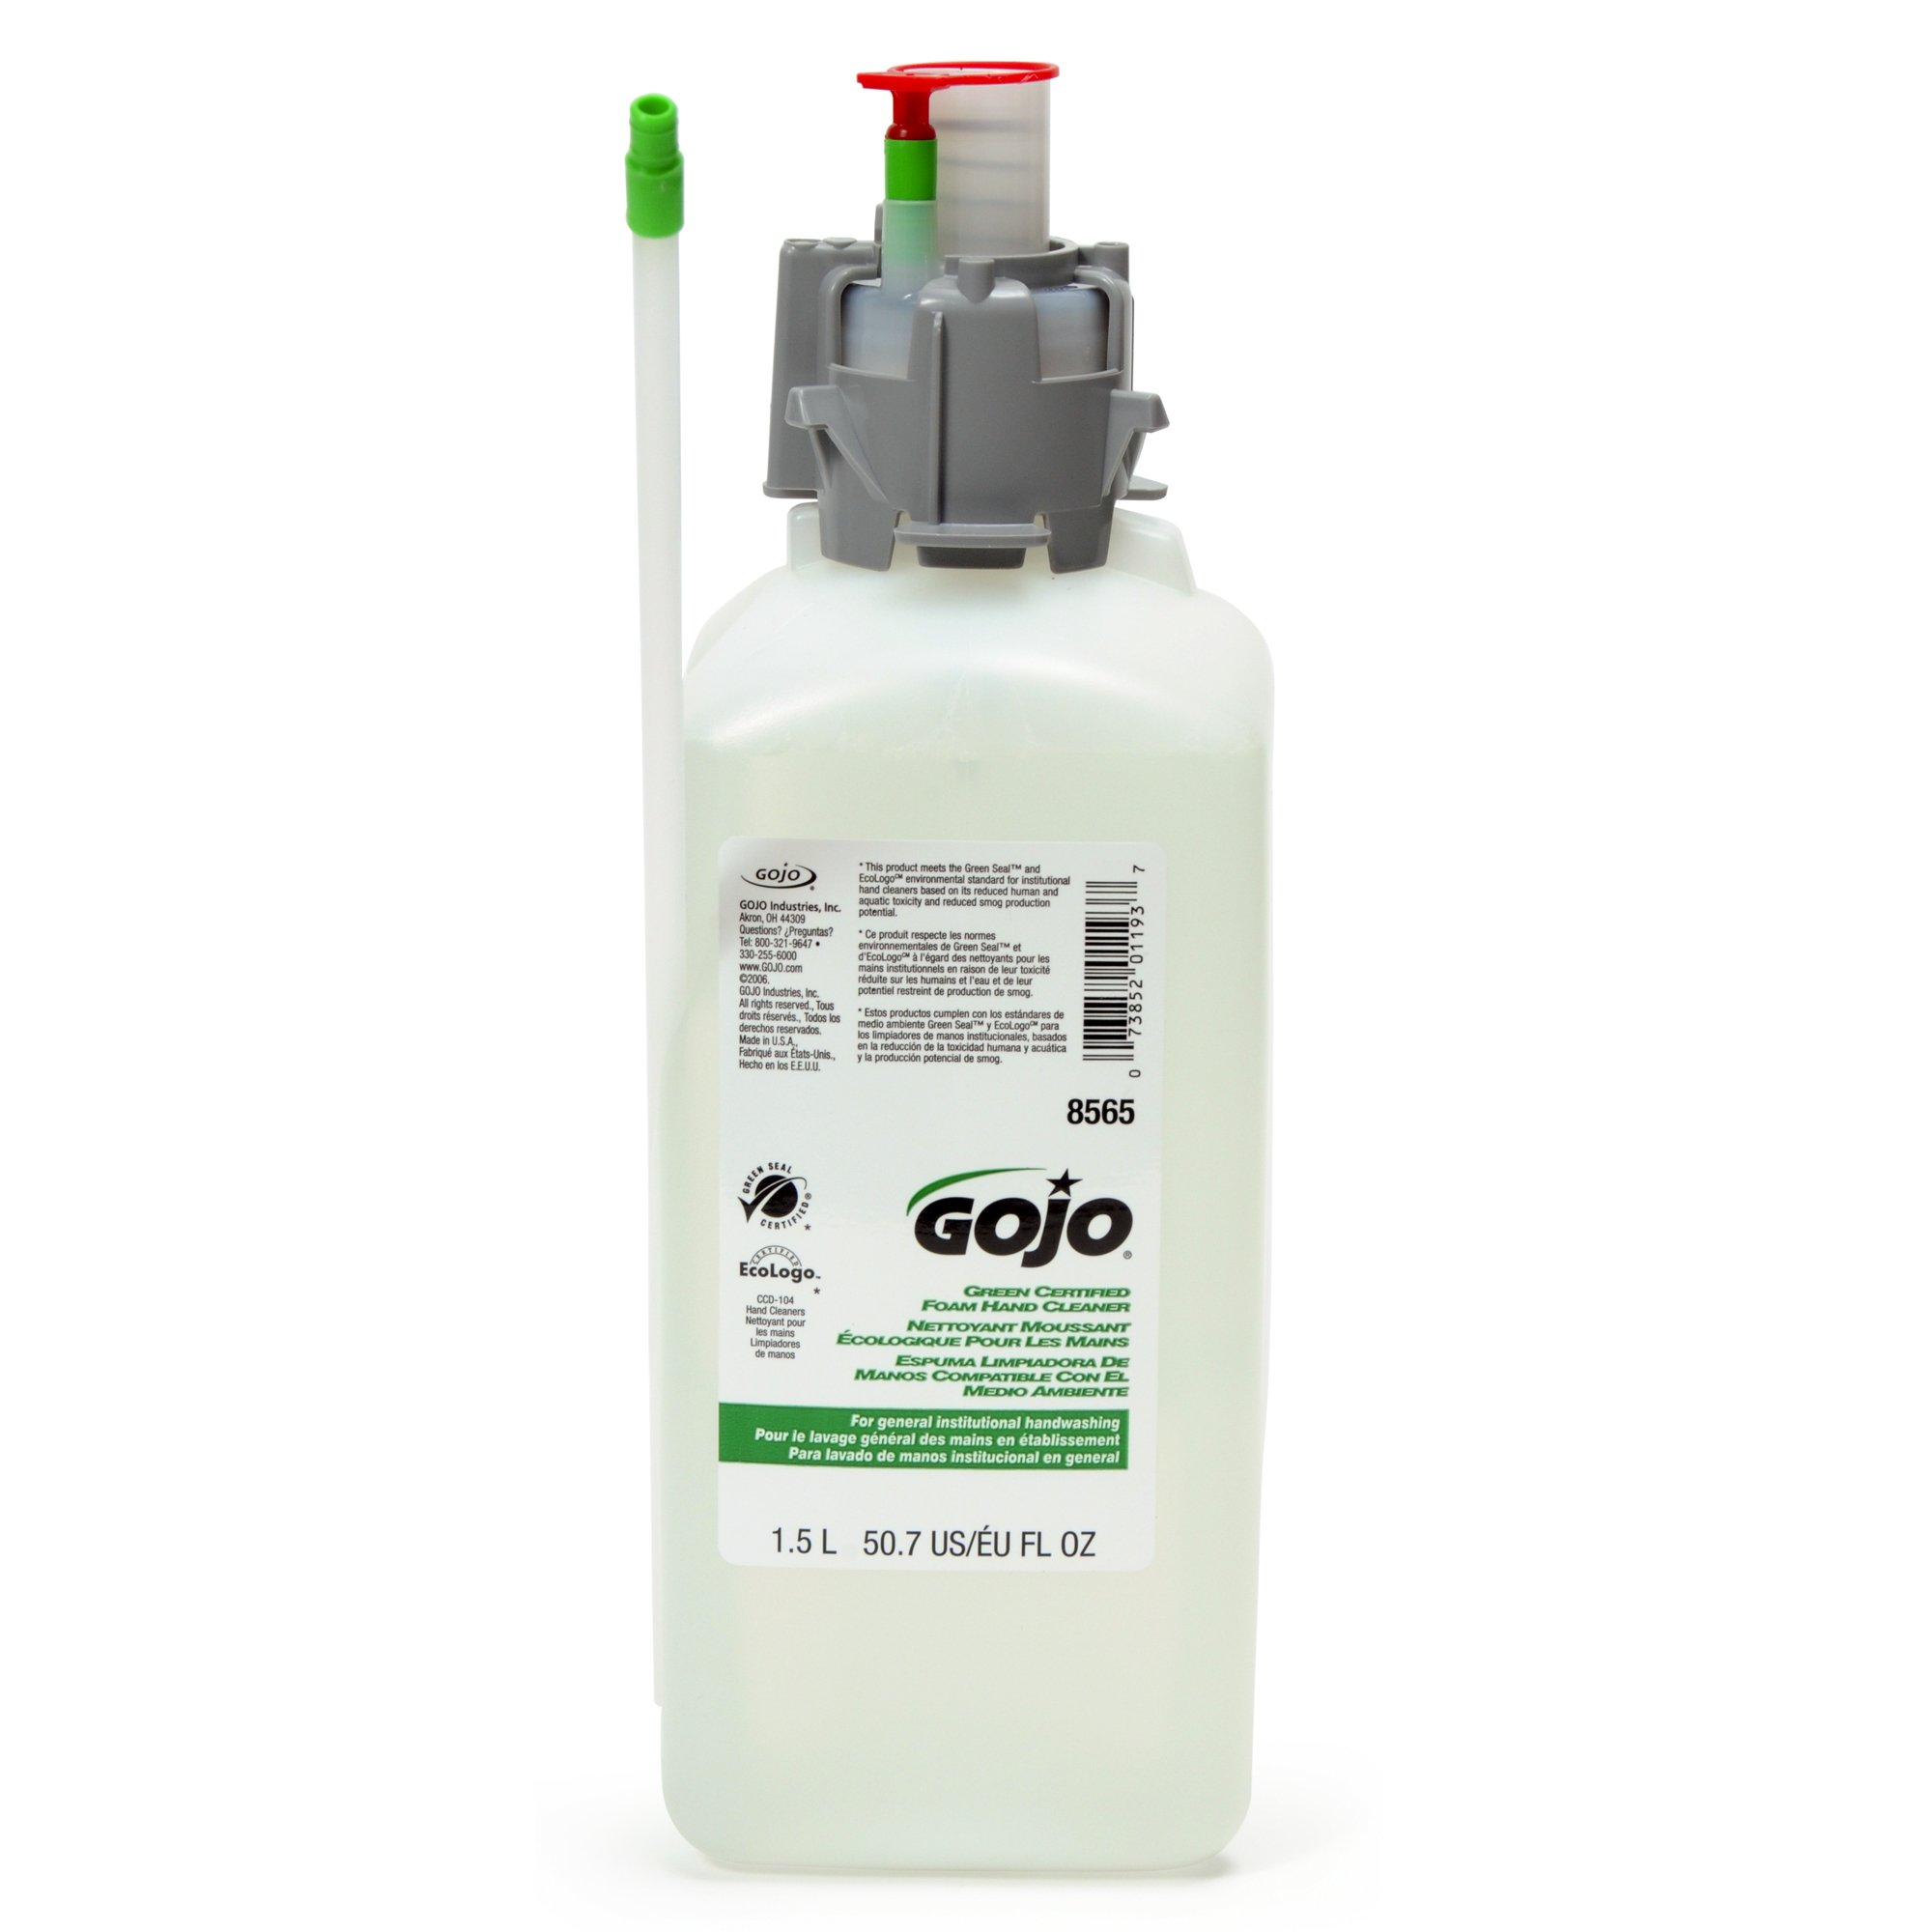 GOJO 856502CT CX & CXI Green Certified Foam Hand Cleaner, Unscented Foam, 1500mL Refill (Case of 2)